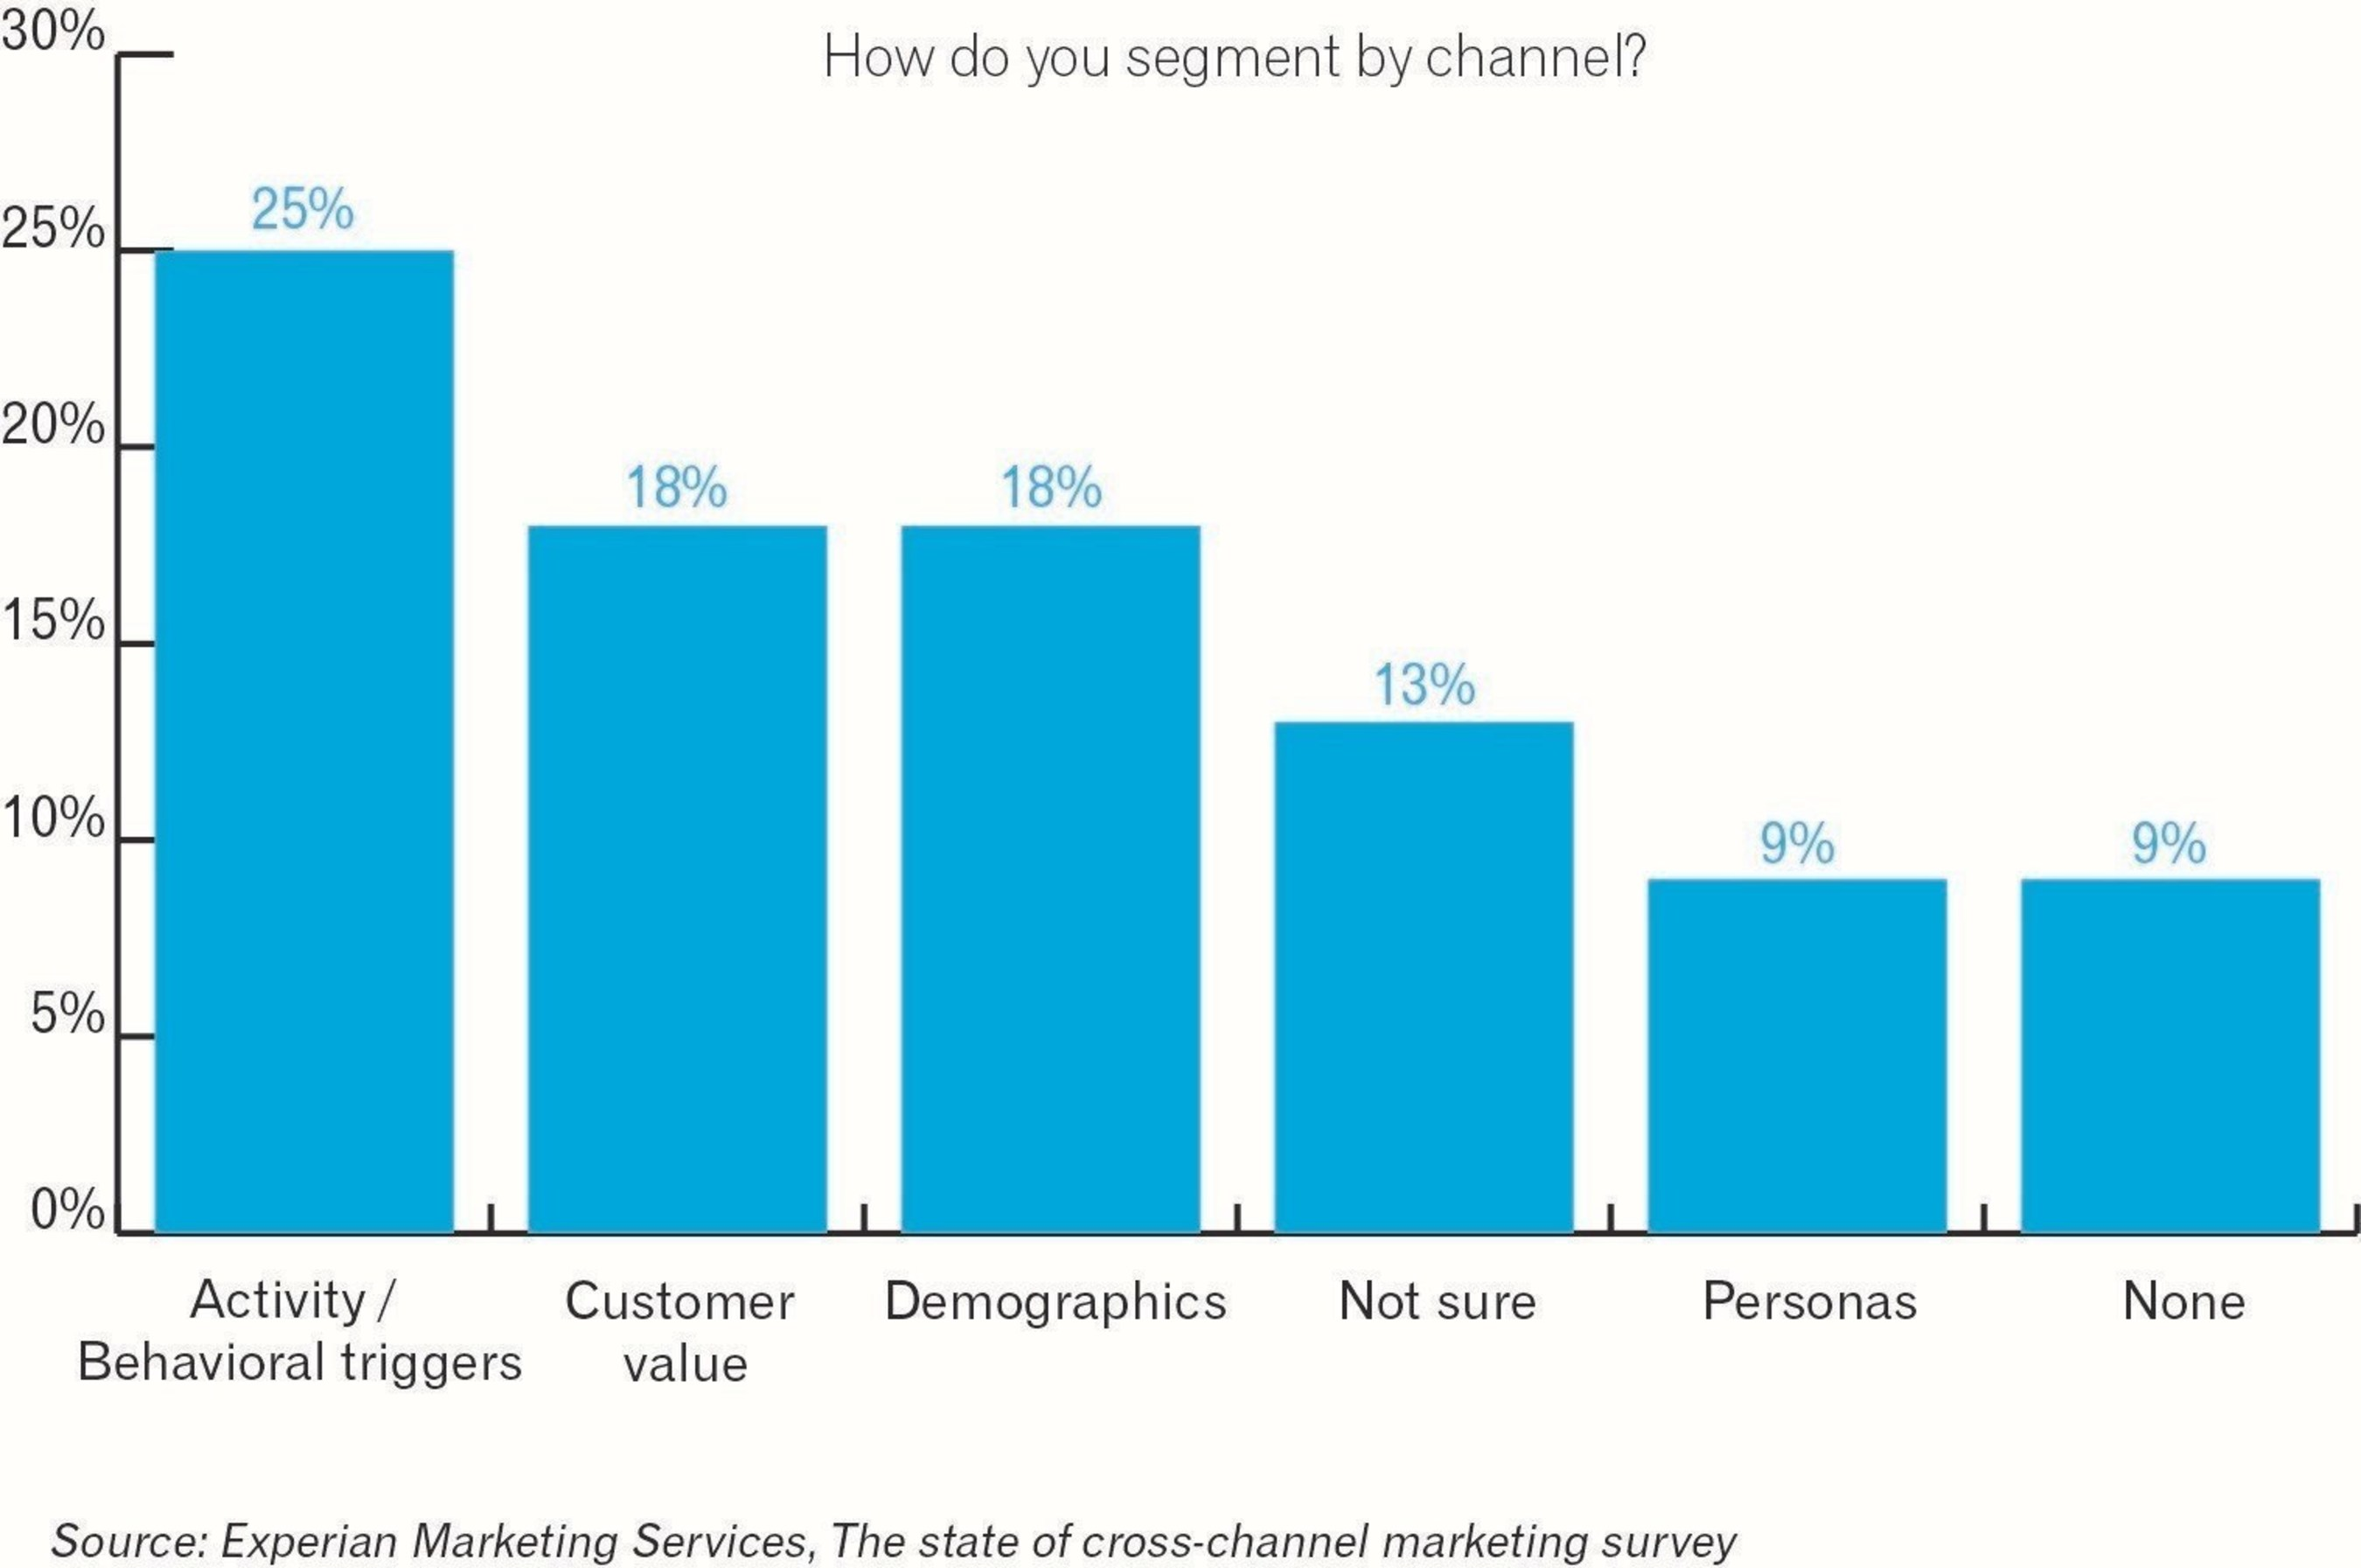 When it comes to email marketing, marketers are 6 percent more likely to execute some form of email segmentation than in 2013.